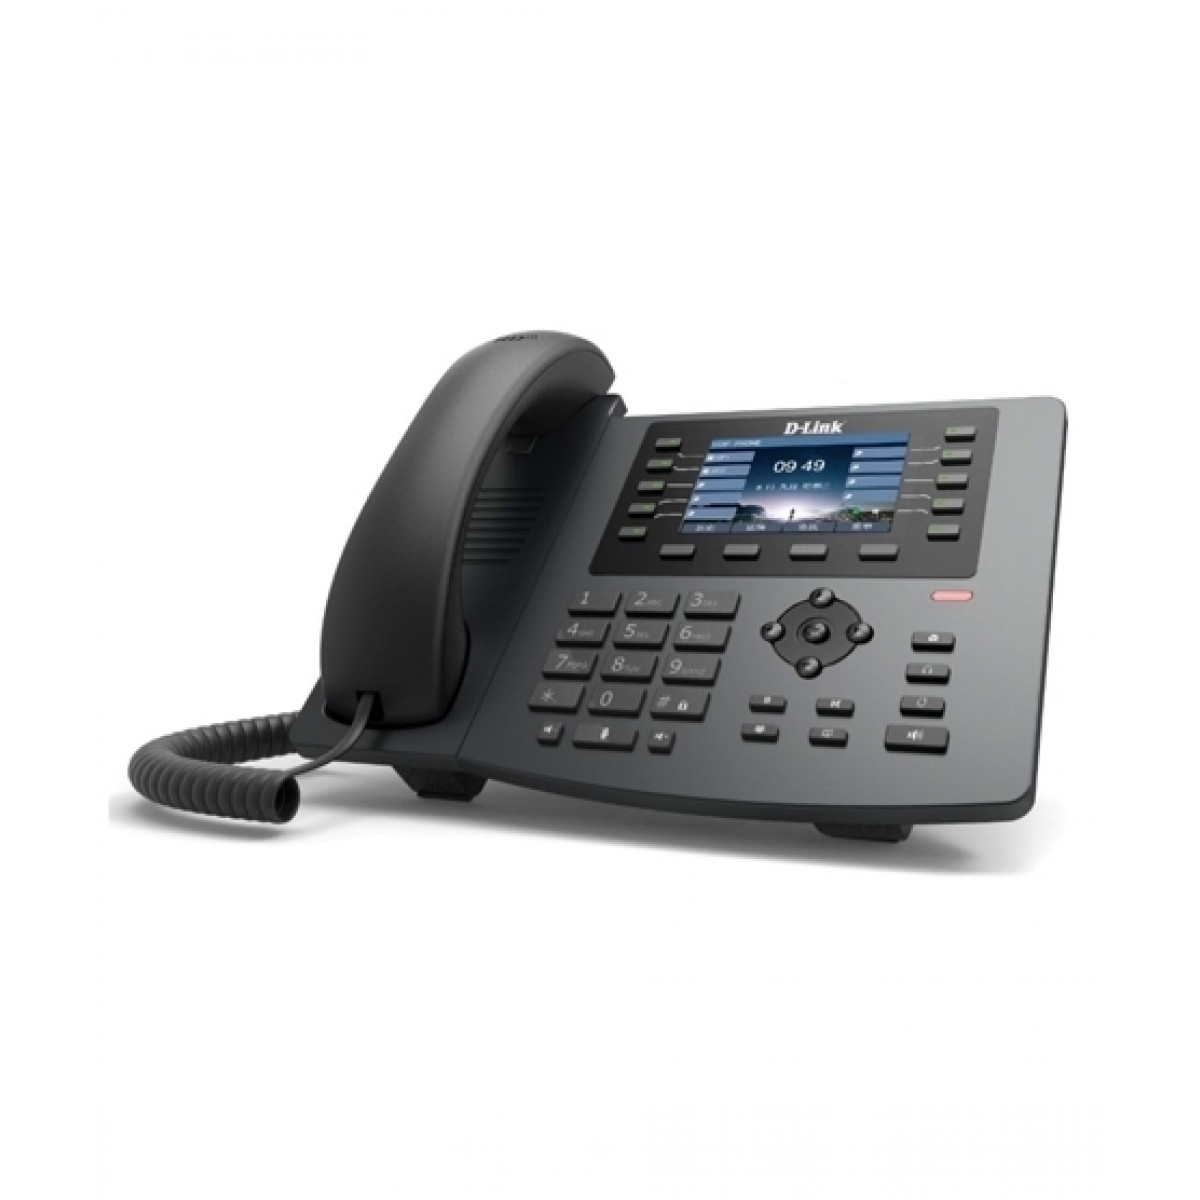 D-Link SIP Phone With Color LCD (DPH-400G/F5)